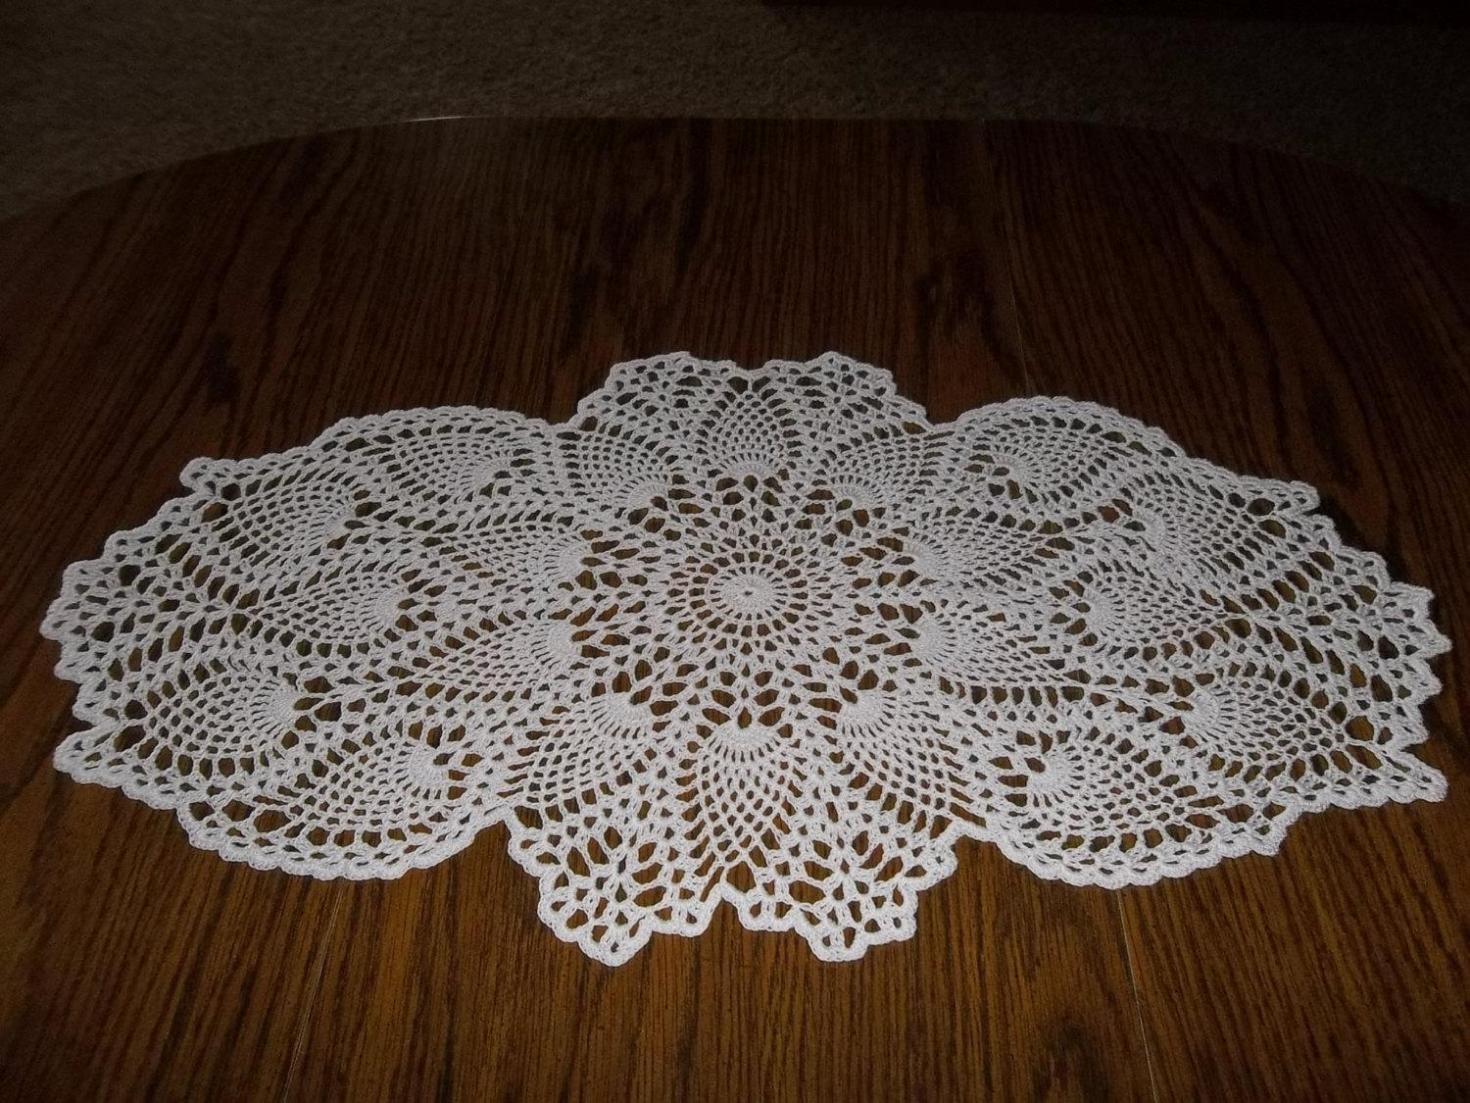 Crochet Free Pattern Table Runner : Just for You: 17 Crochet Table Runner Patterns for ...